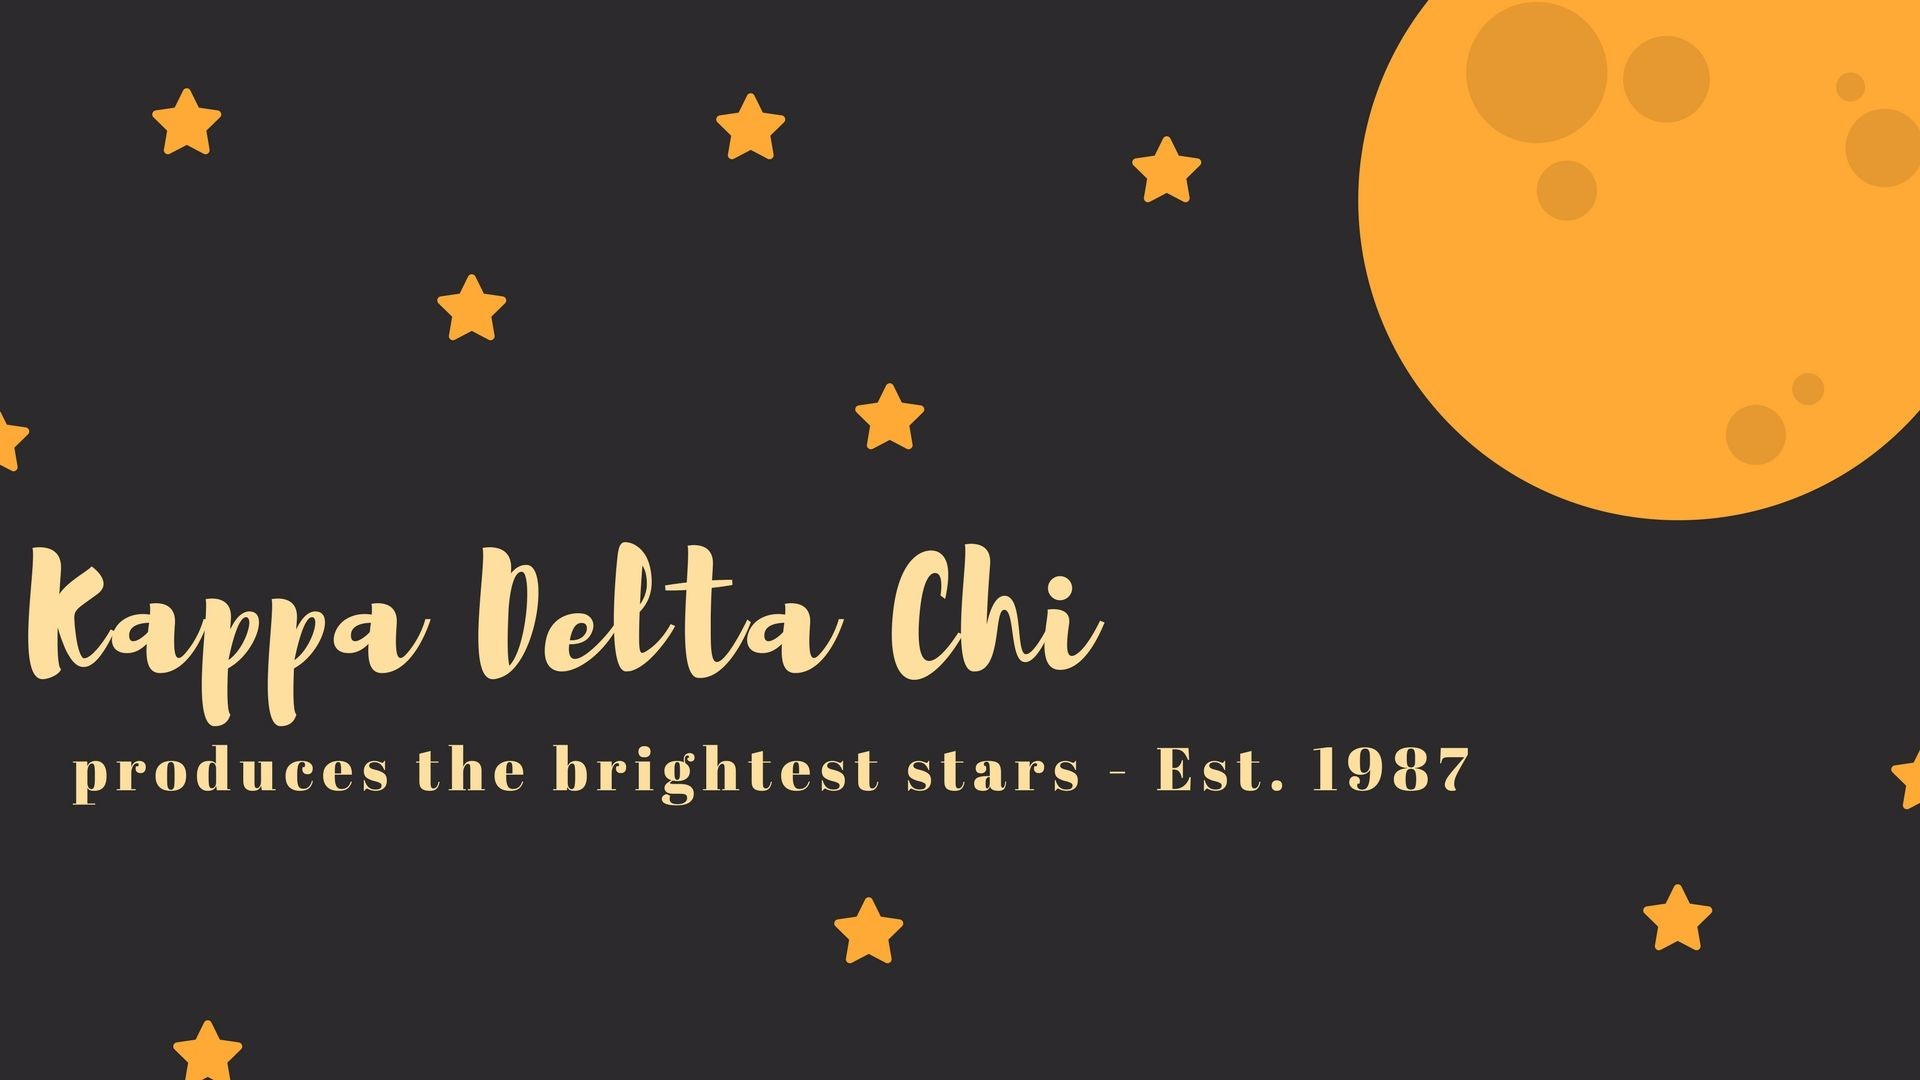 1920x1080 Kappa Delta Chi wallpaper. I made this all myself with the help of Canva!  for all of my KDChi Sisters, please feel free to use them and love them!  give ...